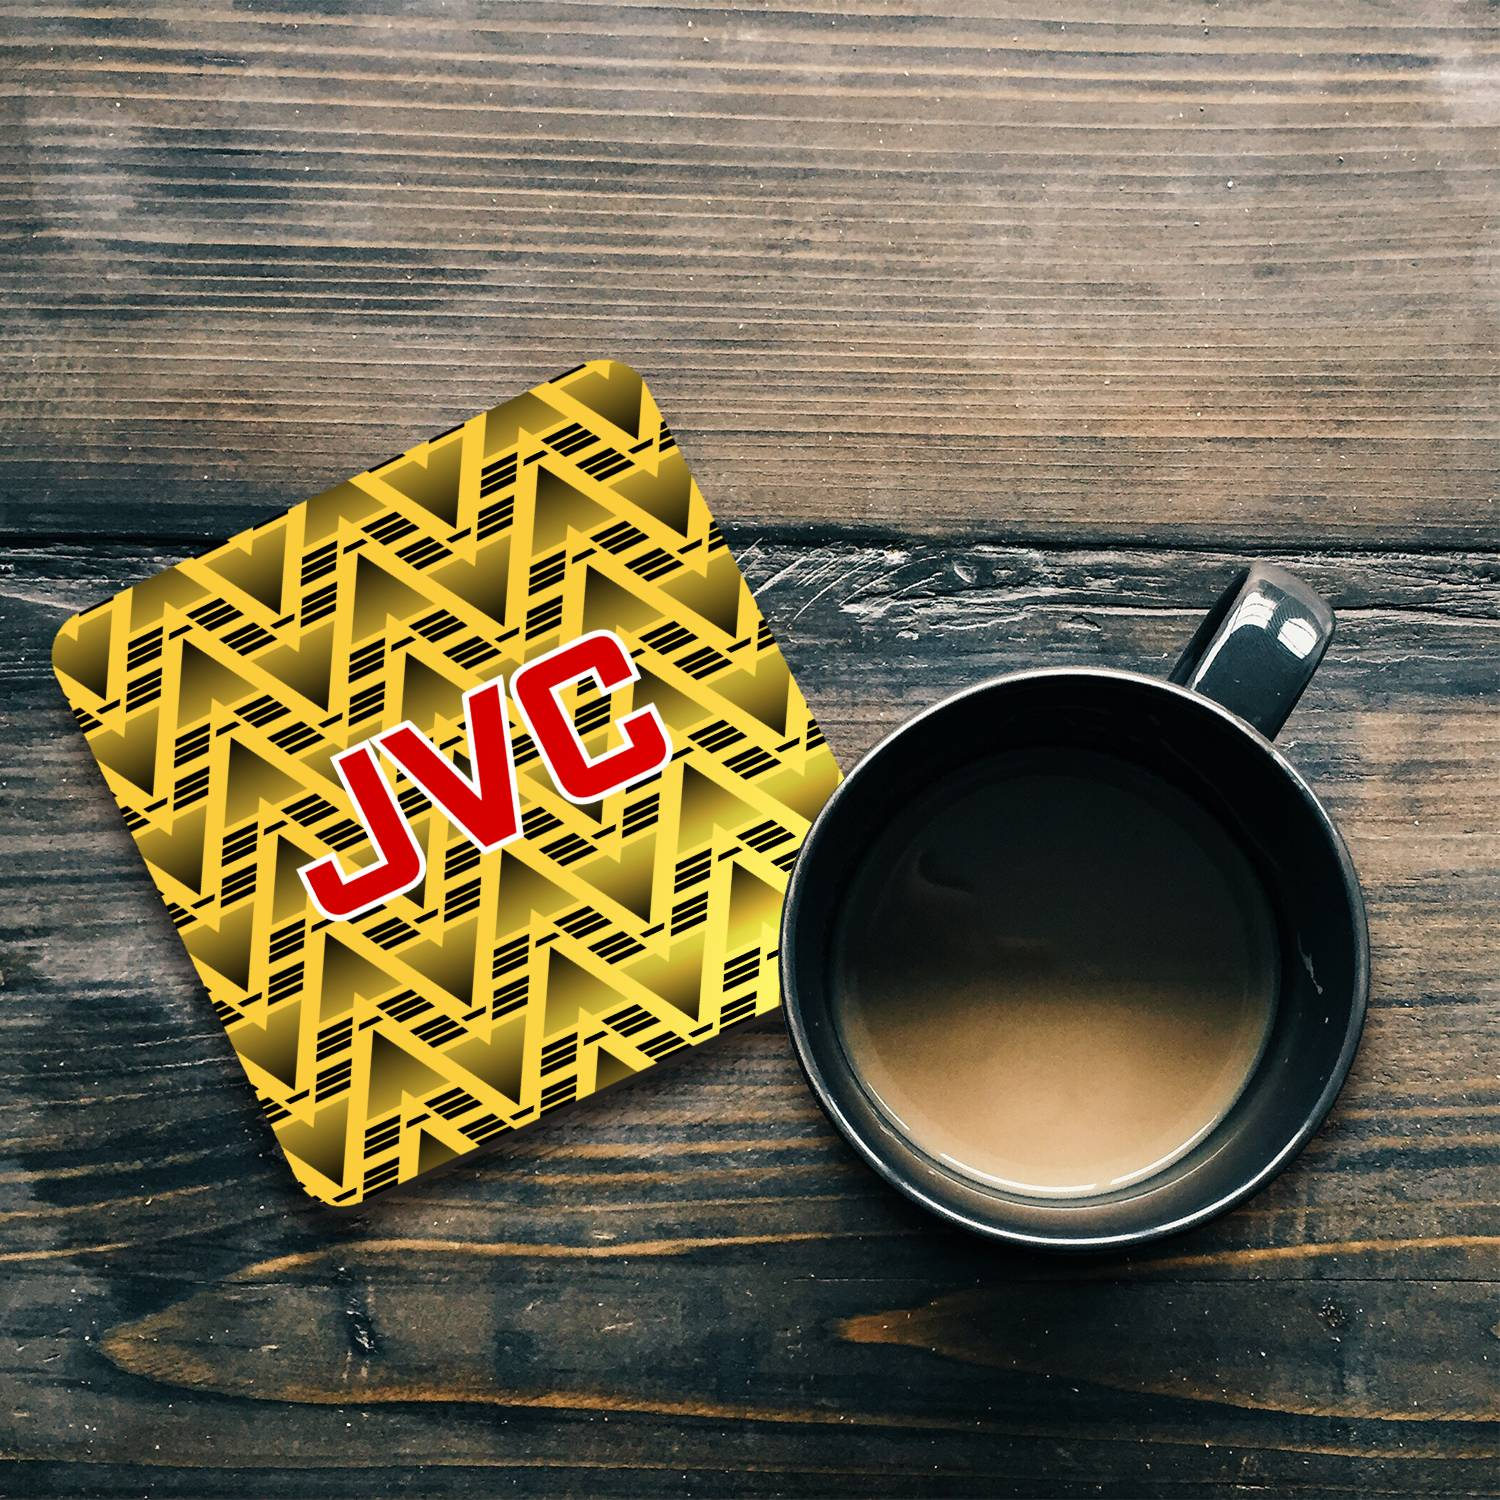 ARSENAL INSPIRED COASTER 1991 AWAY